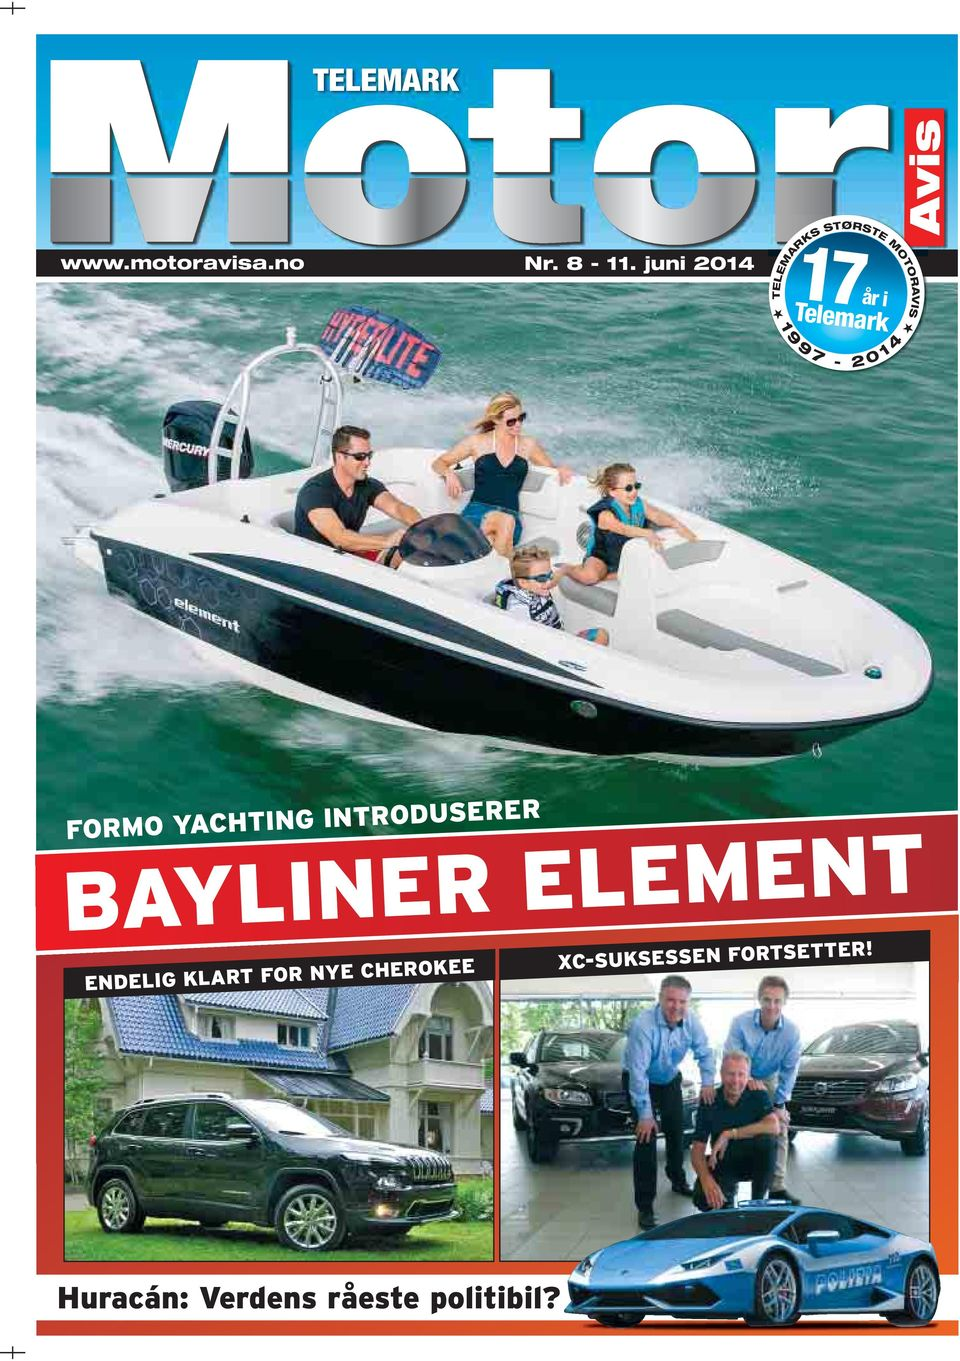 7-2 0 1 4 FORMO YACHTING INTRODUSERER BAYLINER ELEMENT